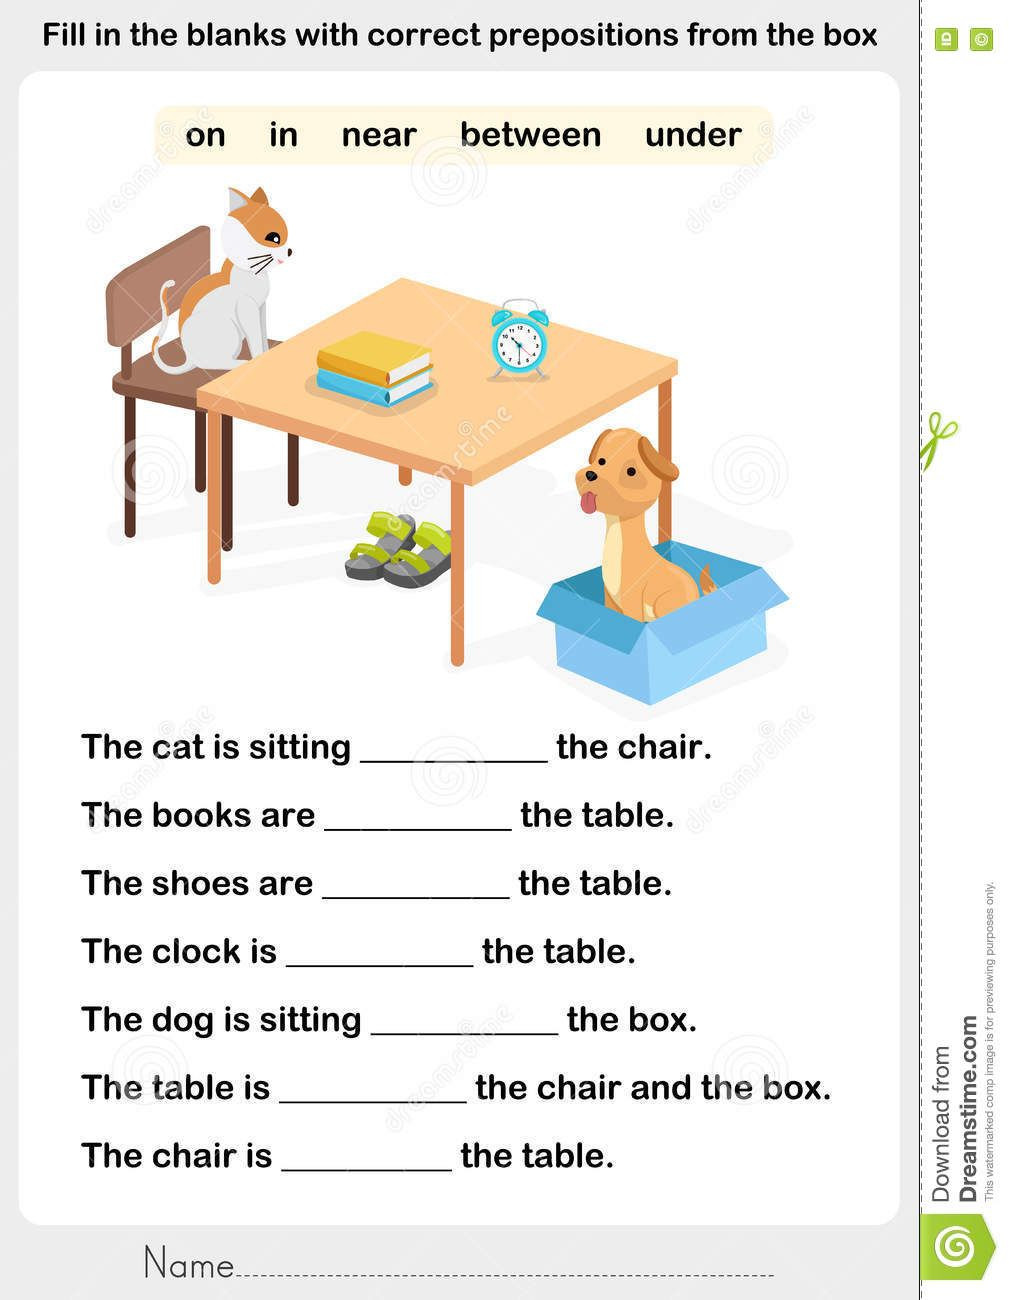 Preposition Worksheets for Middle School Illustration About Fill In the Blanks with Correct